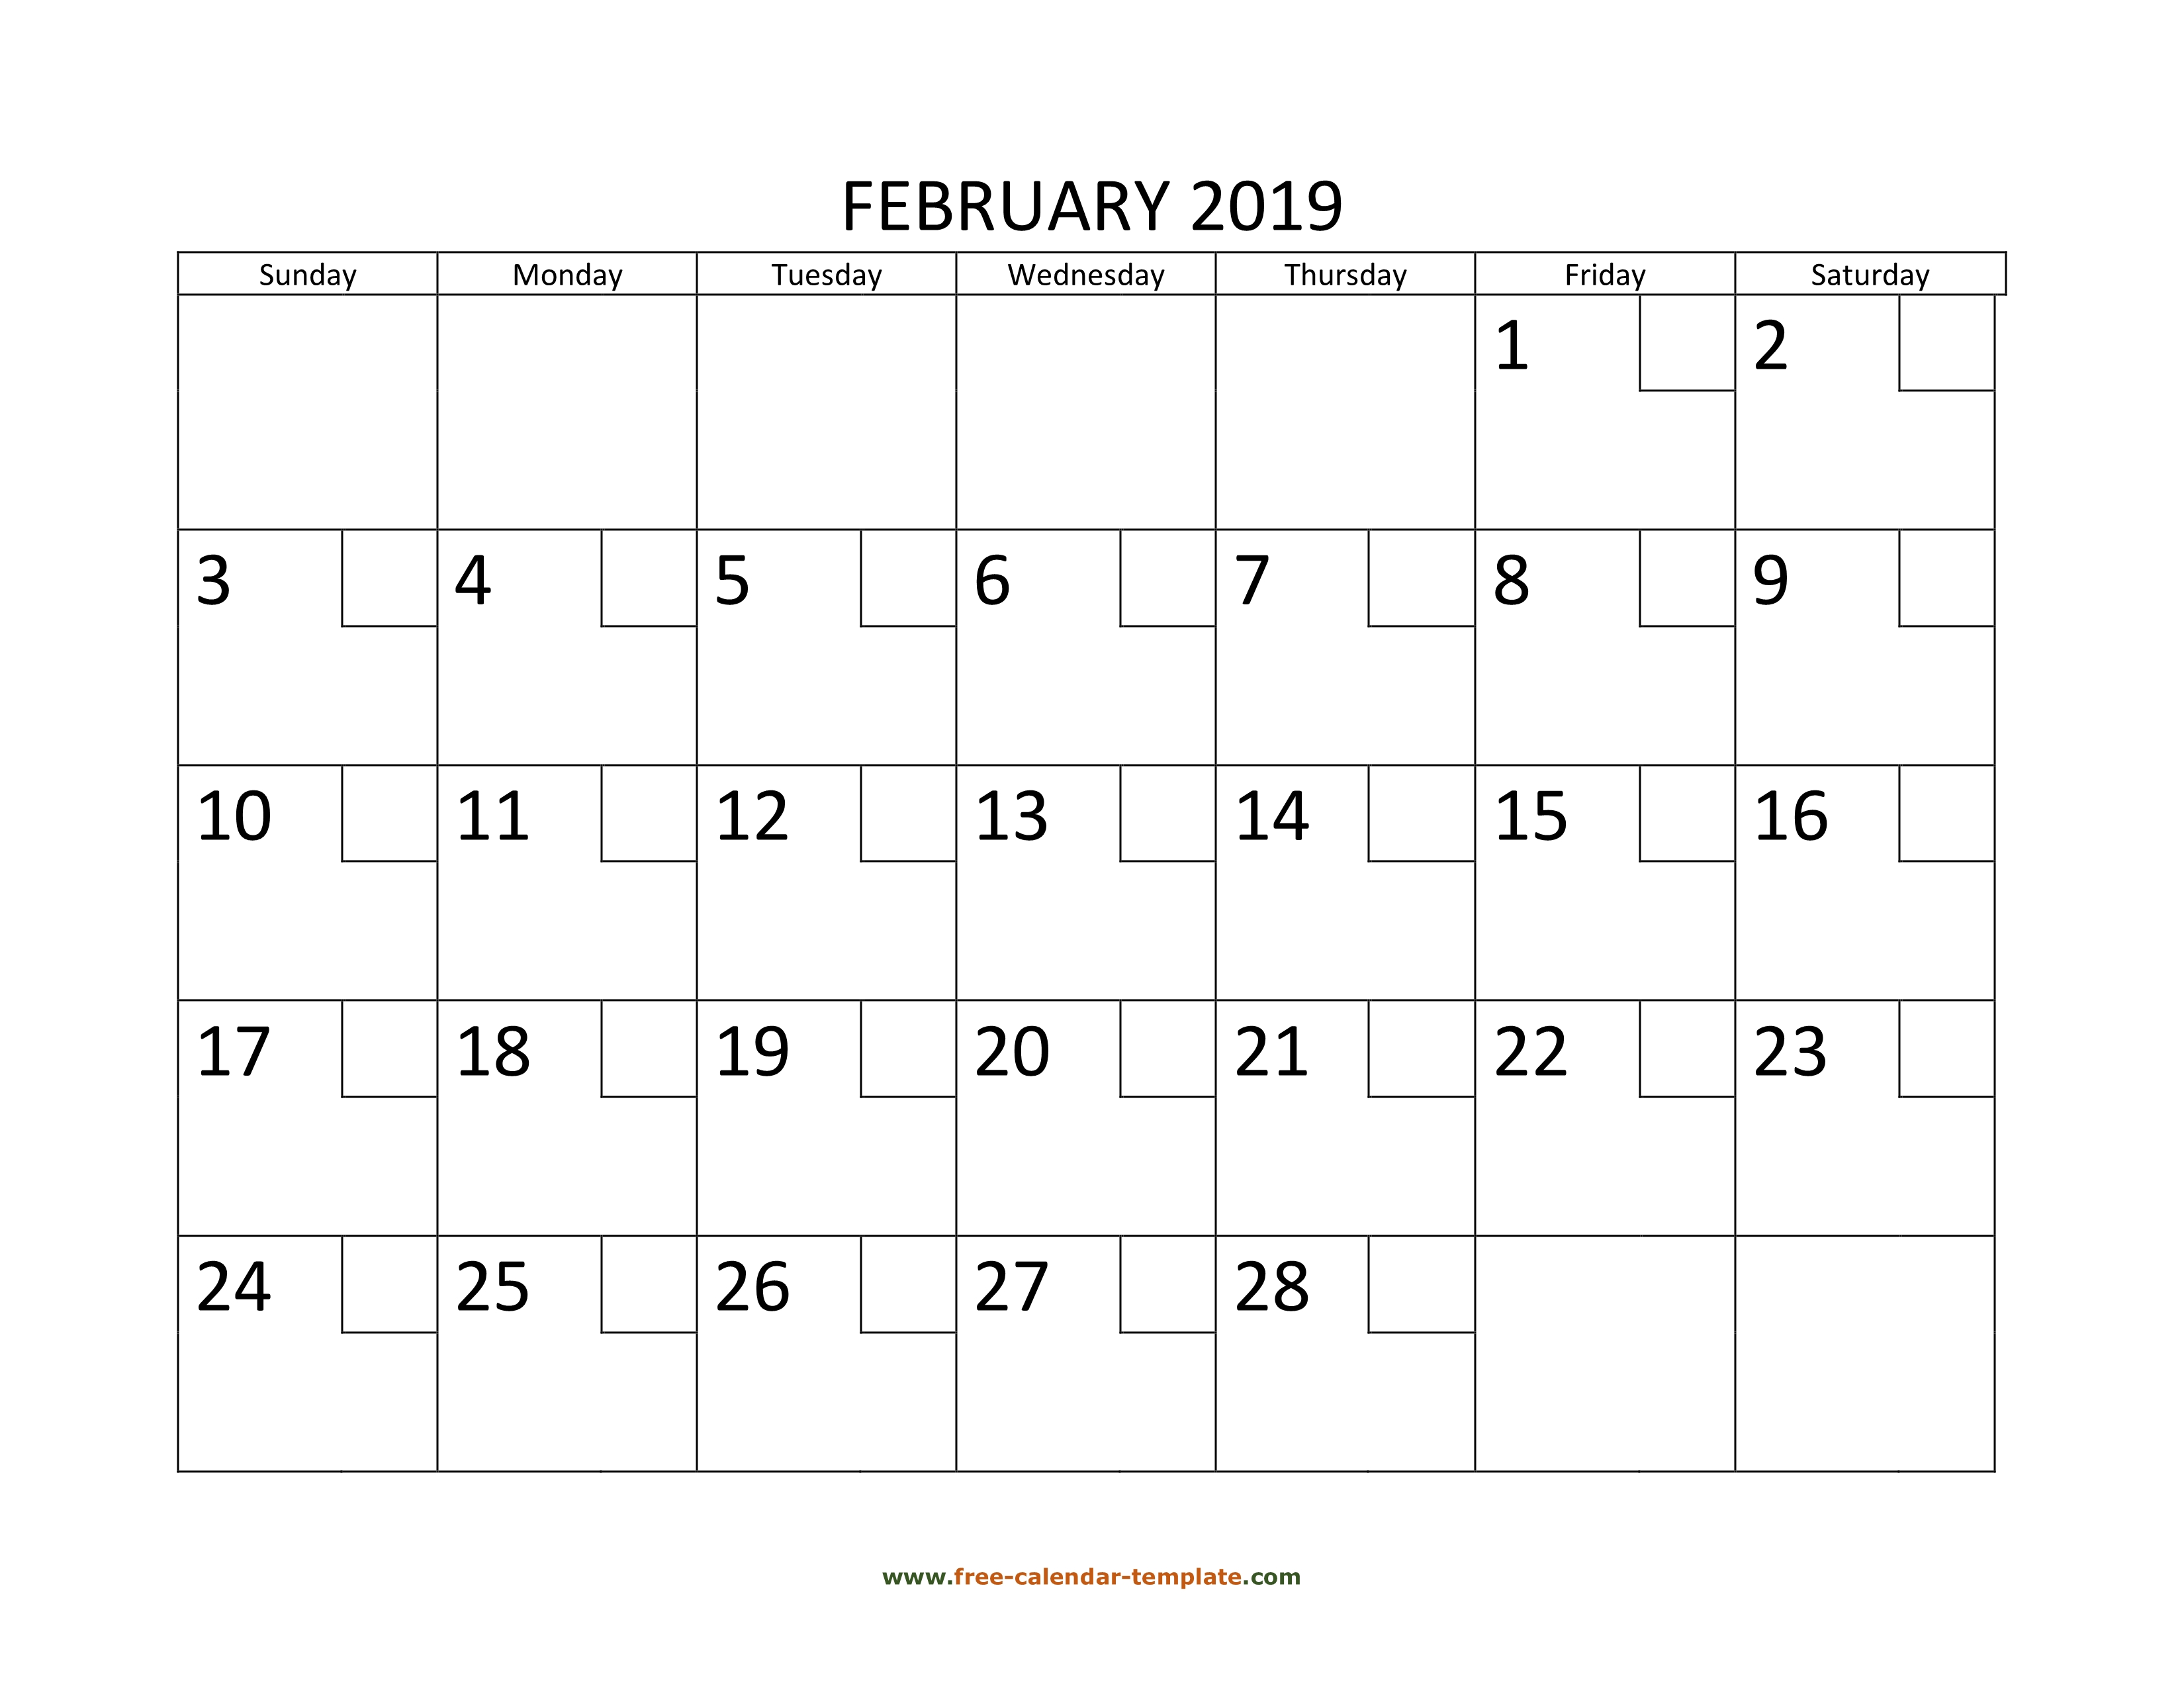 Calendar February 2019 Calendartemplatecom February Calendar 2019 Printable with checkboxes (horizontal